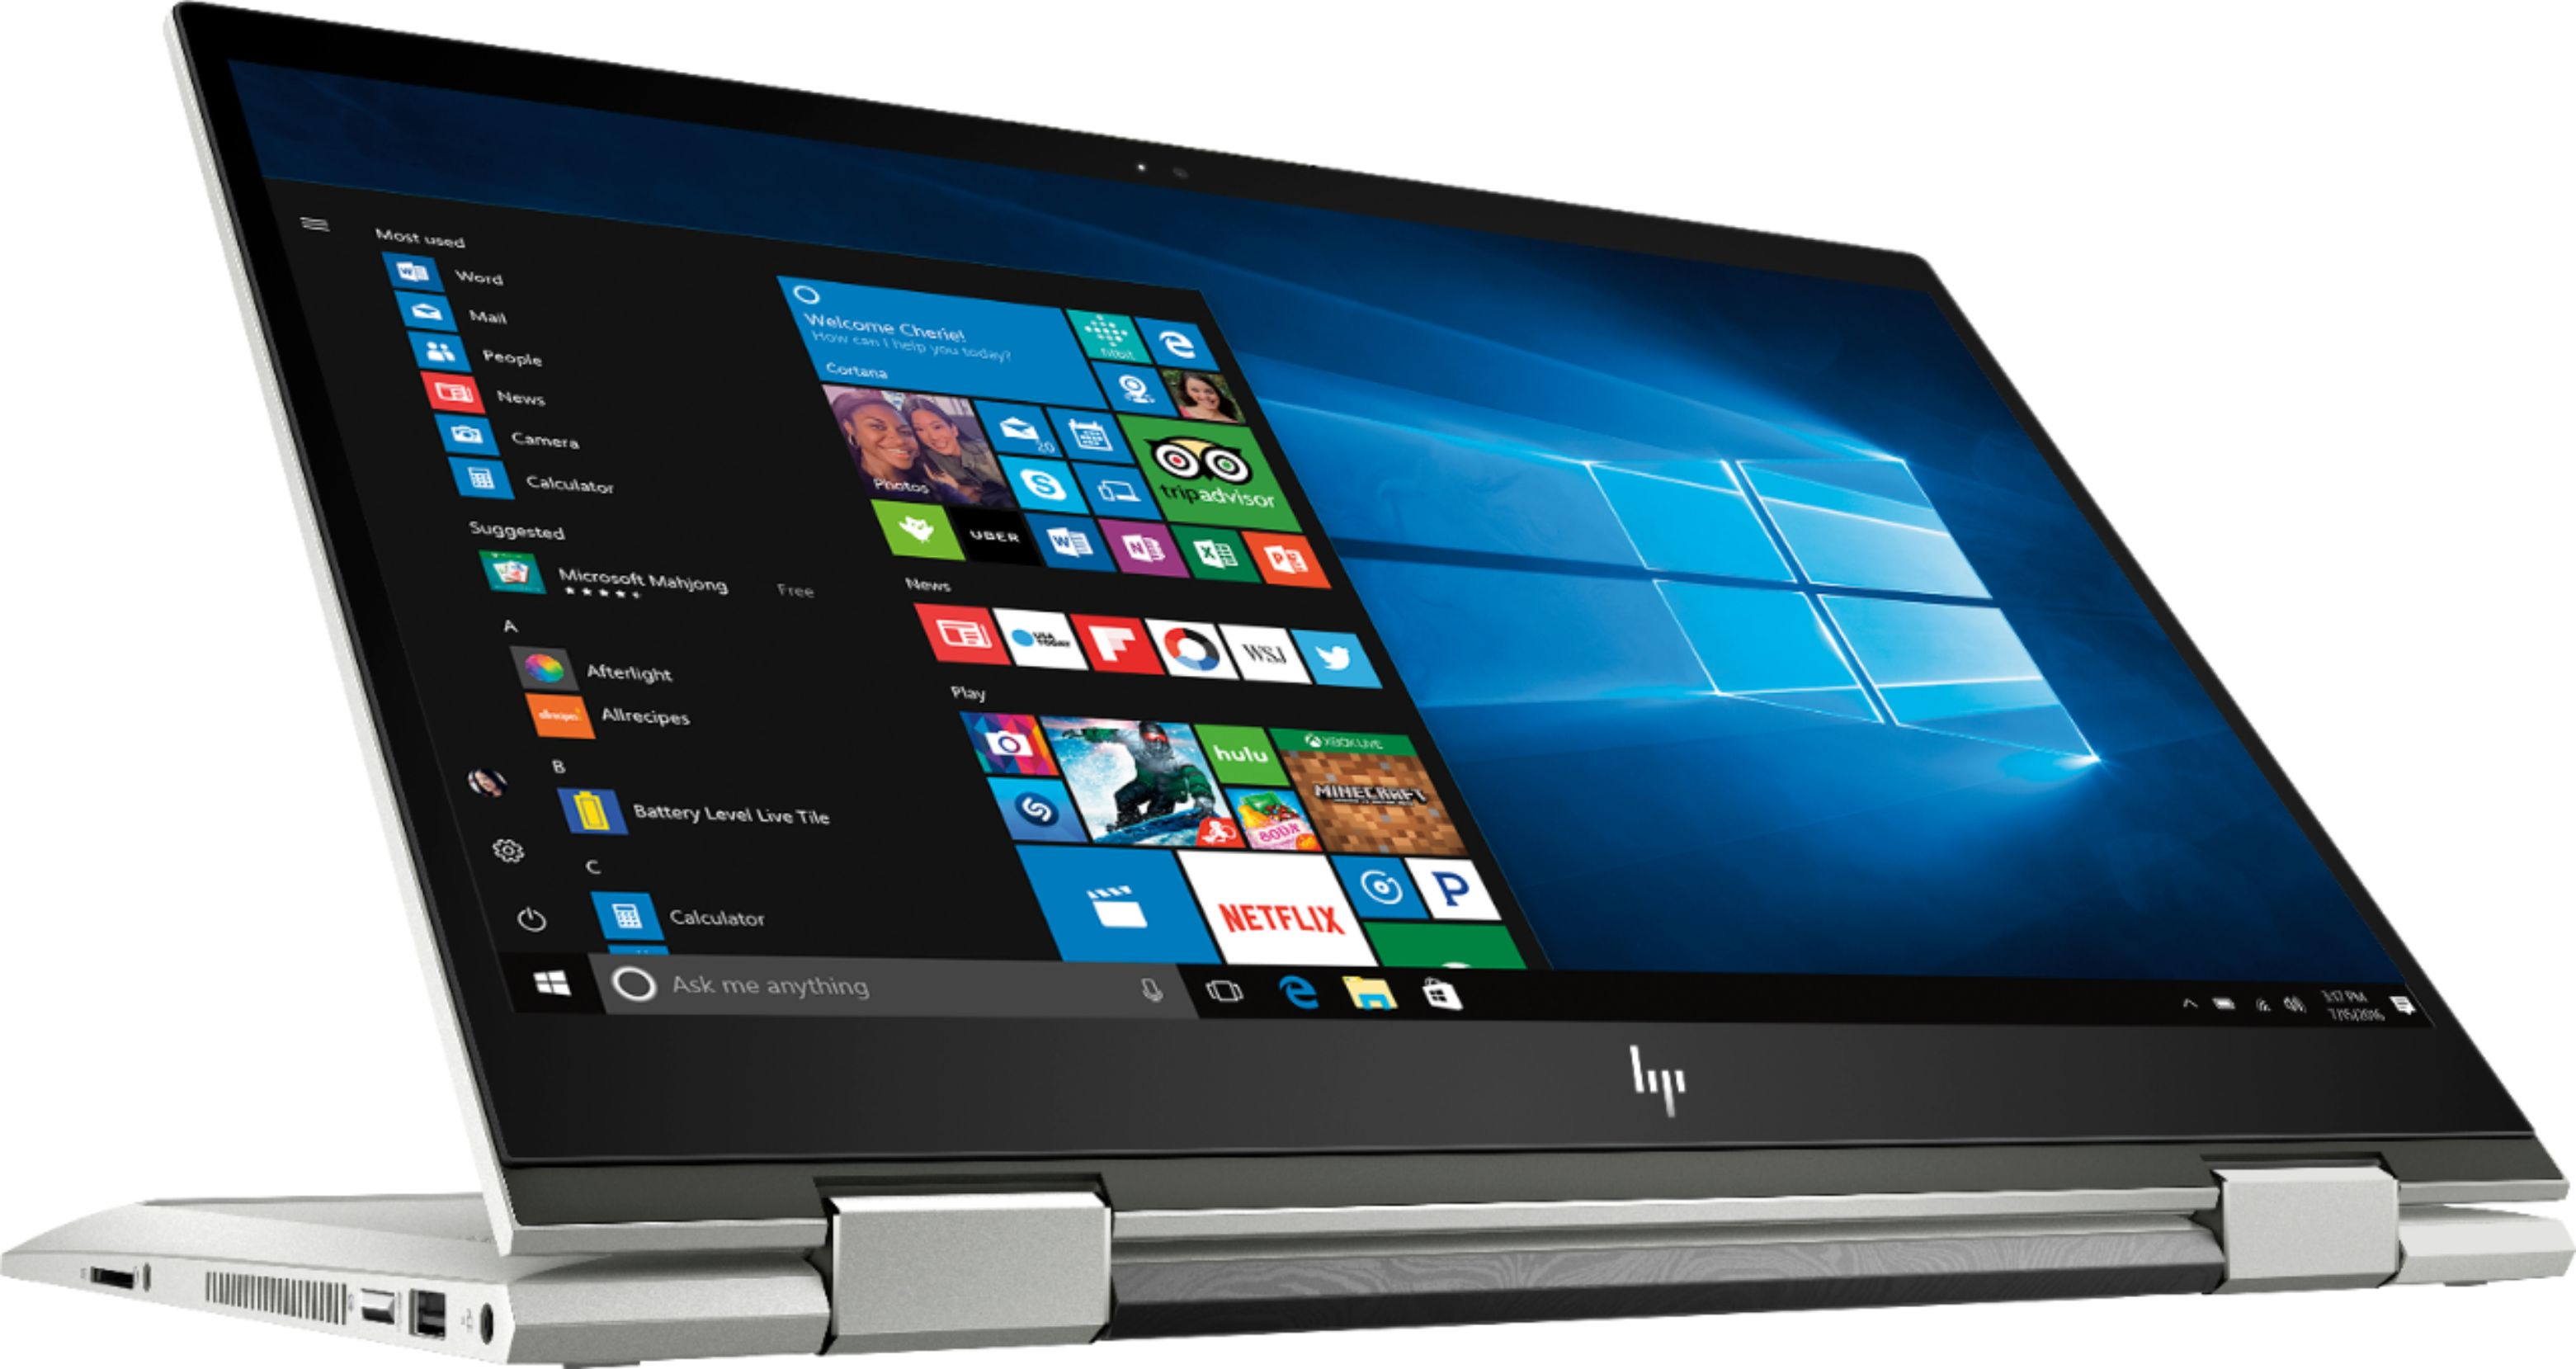 """Alt View Zoom 1. Geek Squad Certified Refurbished ENVY x360 2-in-1 15.6"""" Touch-Screen Laptop - Intel Core i7 - 12GB Memory - 256GB SSD - HP Finish In Natural Silver."""